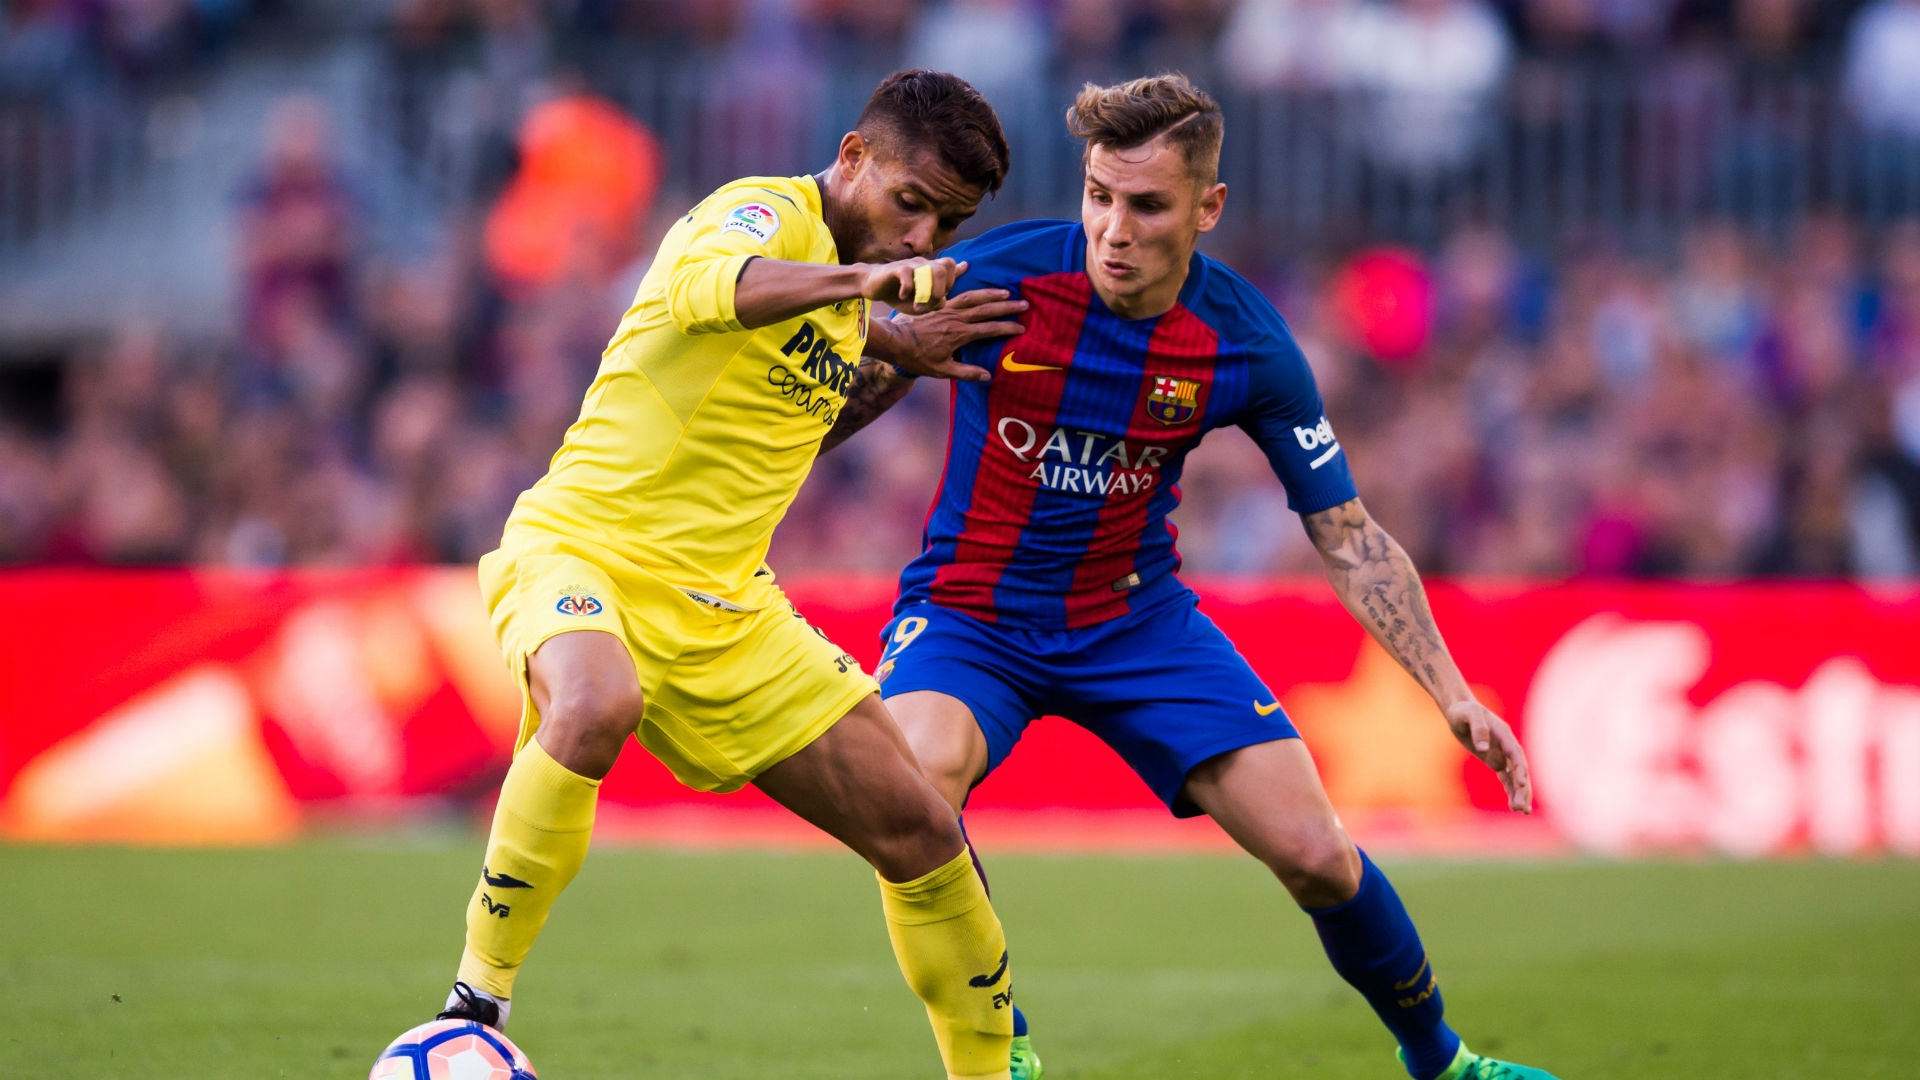 Barcelona injured player Lucas Digne